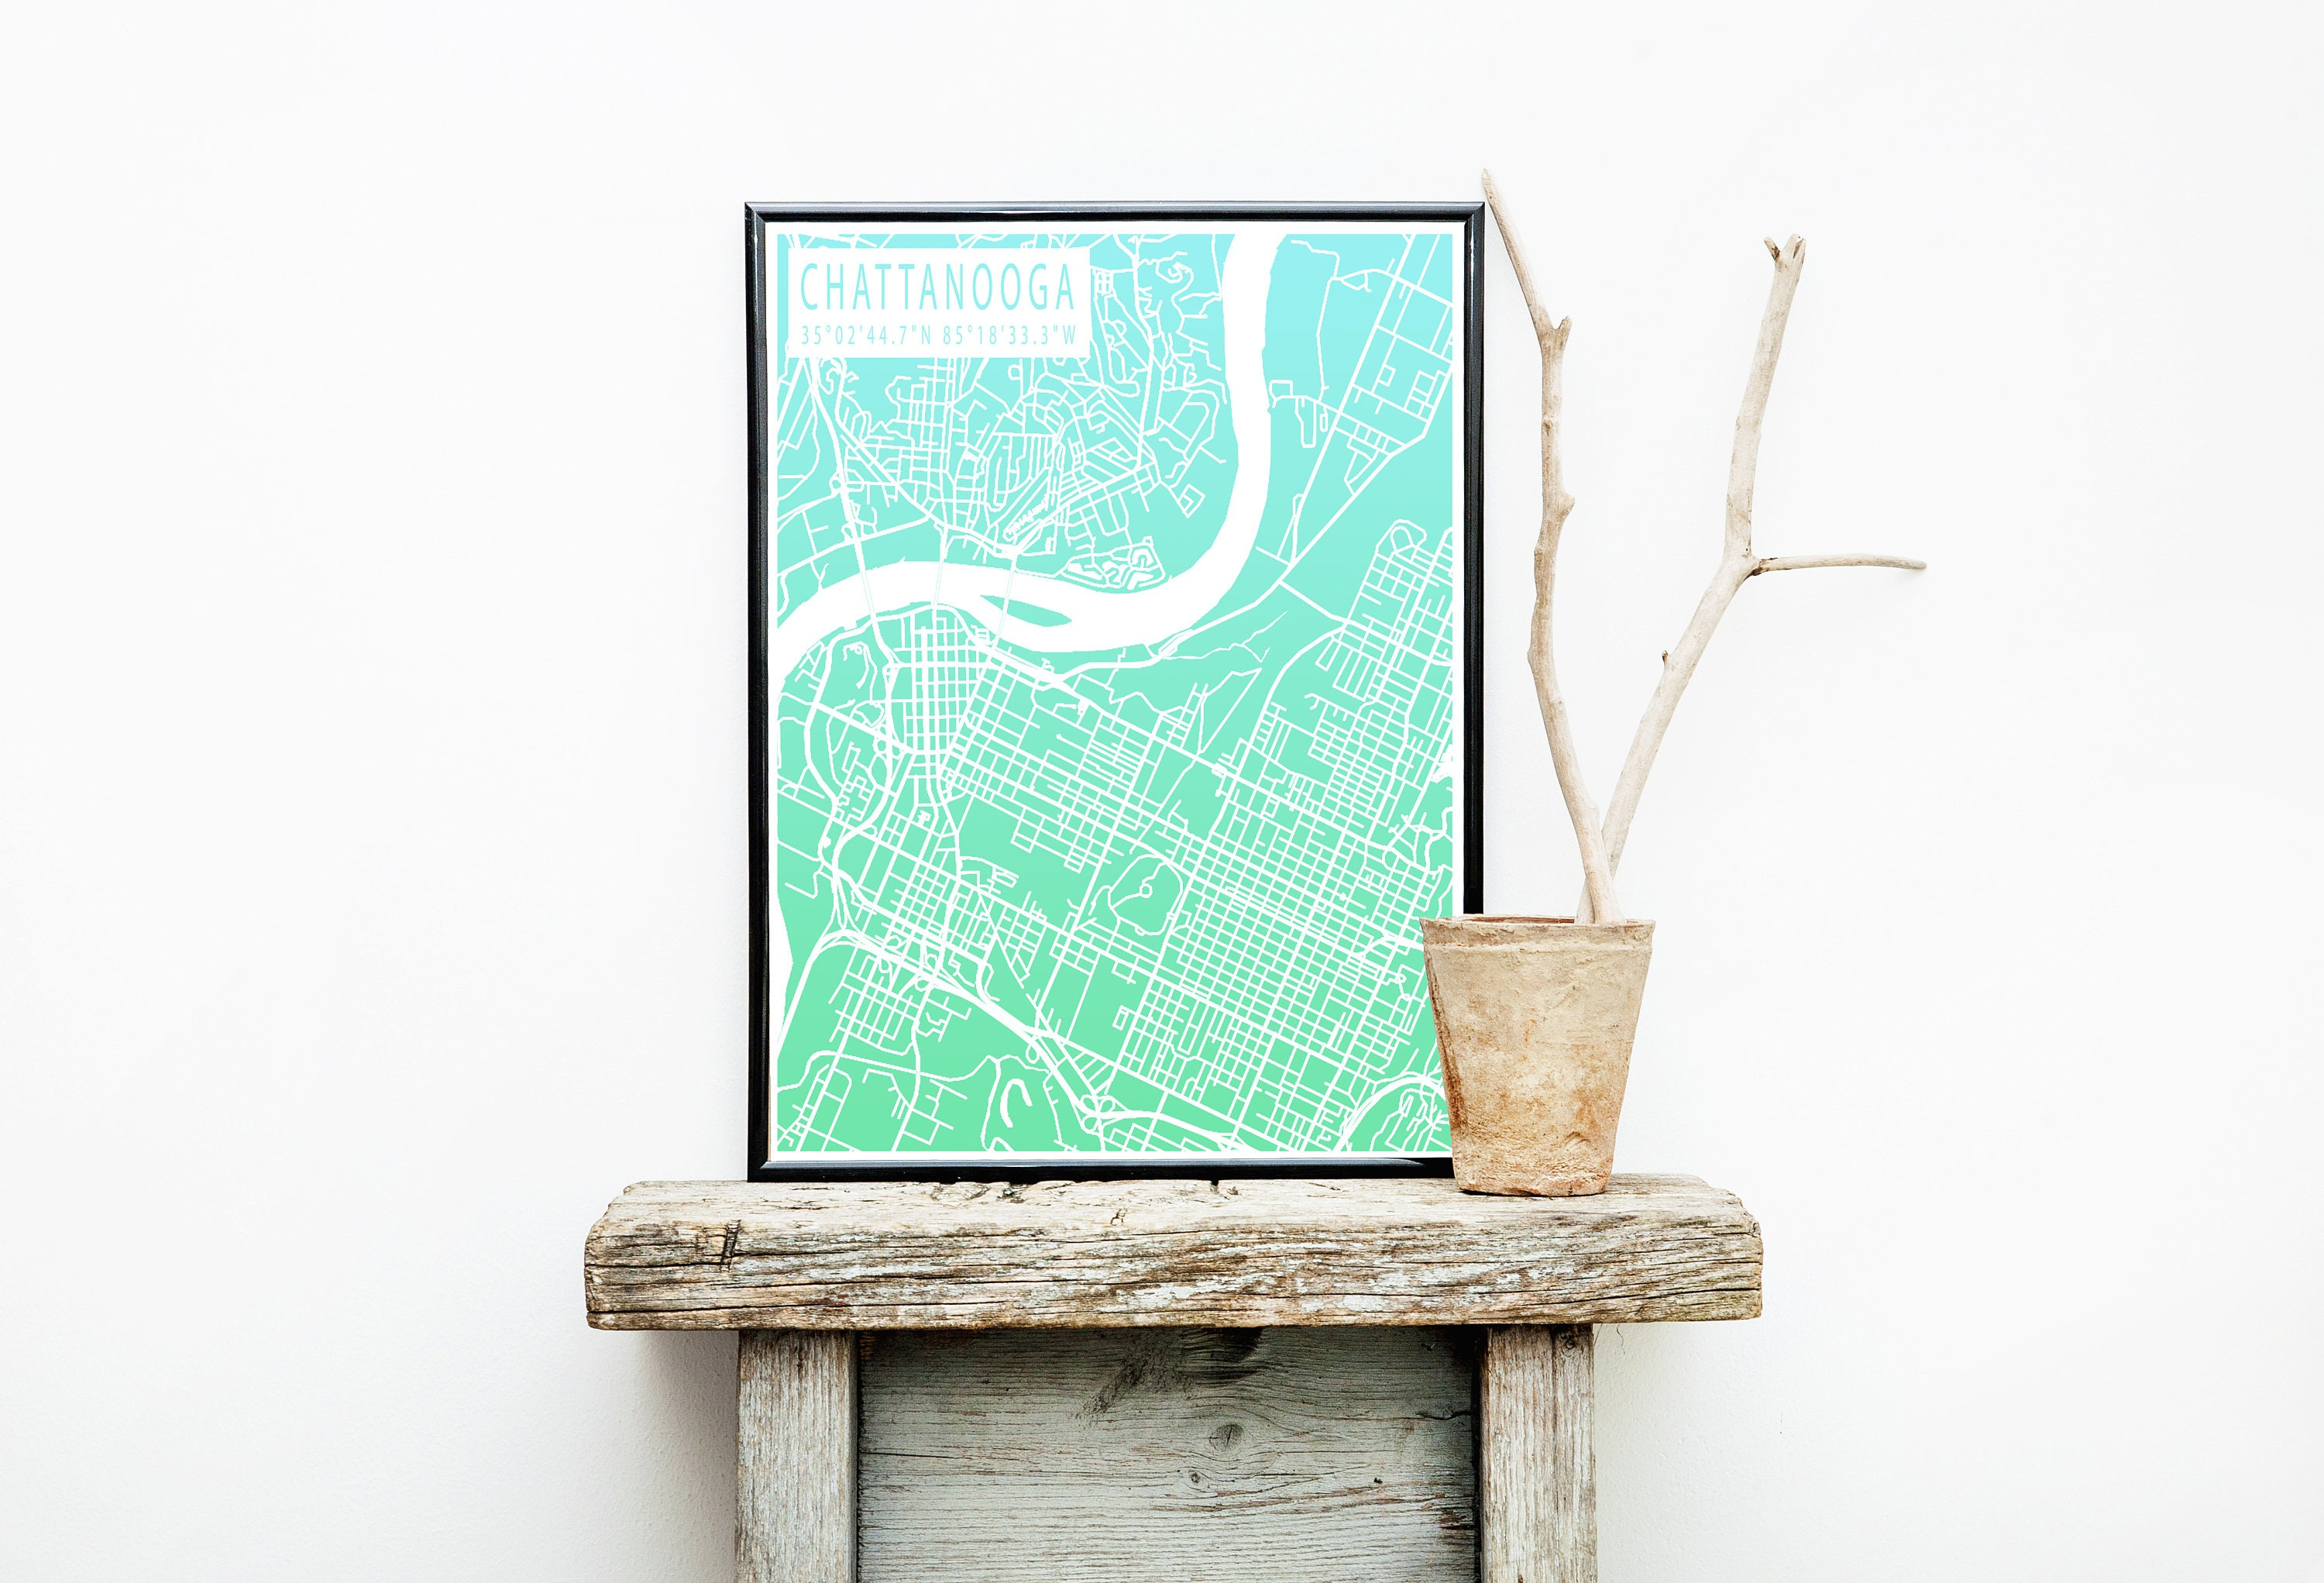 Map of Chattanooga, Chattanooga TN, City Map, Travel Art, Digital Print,  Map Print, Chattanooga Print, Wanderlust, Map Poster, Map Wall Art